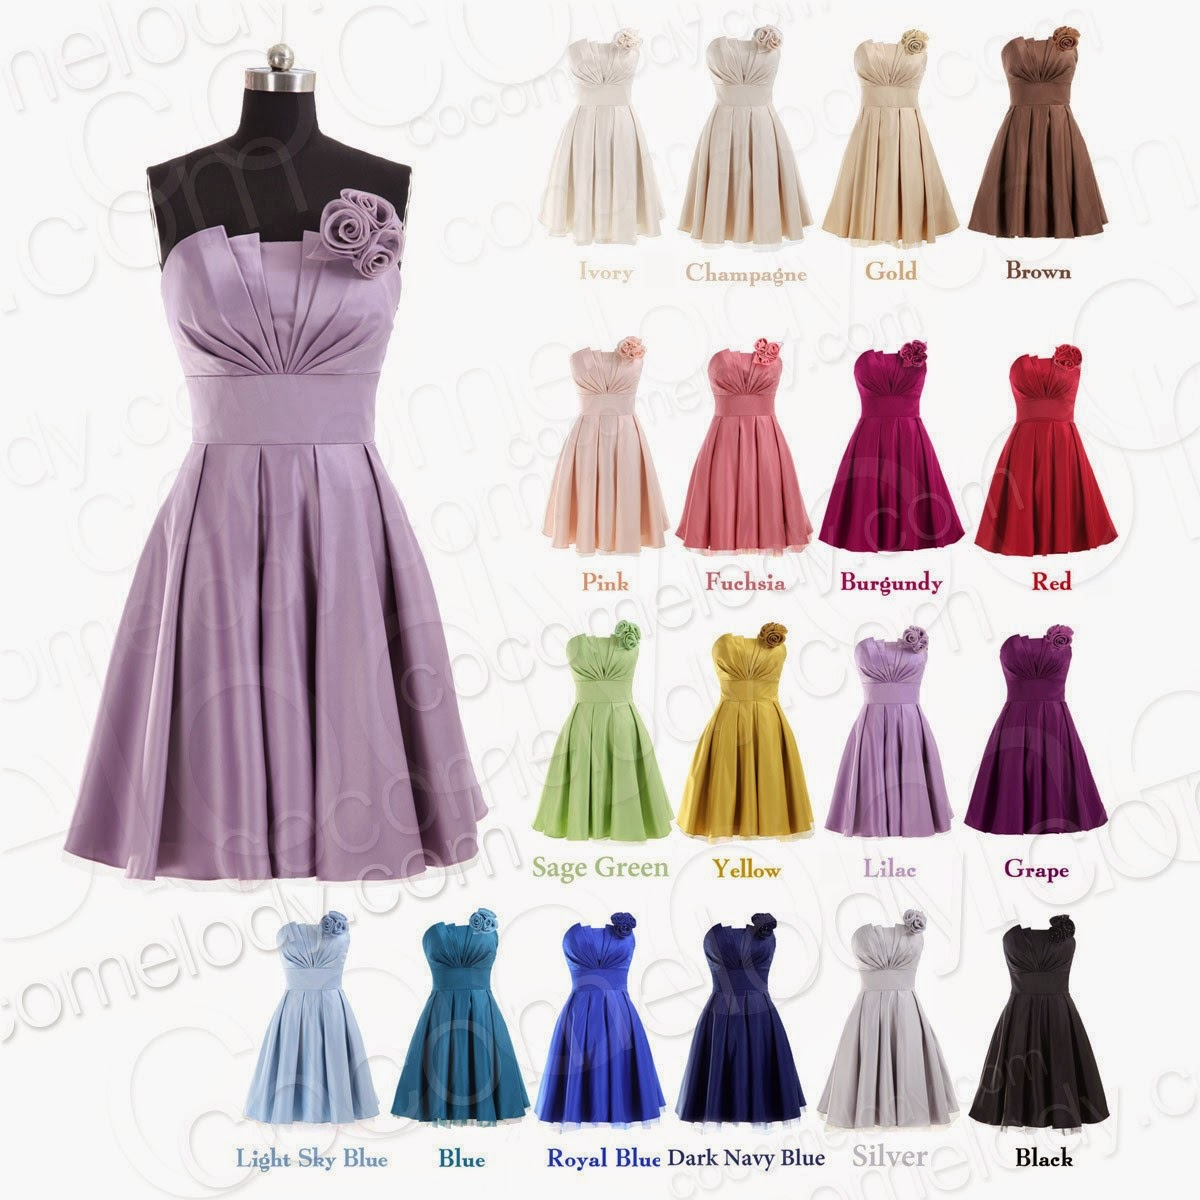 http://www.cocomelody.com/a-line-blue-knee-length-strapless-satin-bridesmaid-dress-cojk13002-18colors-available.html